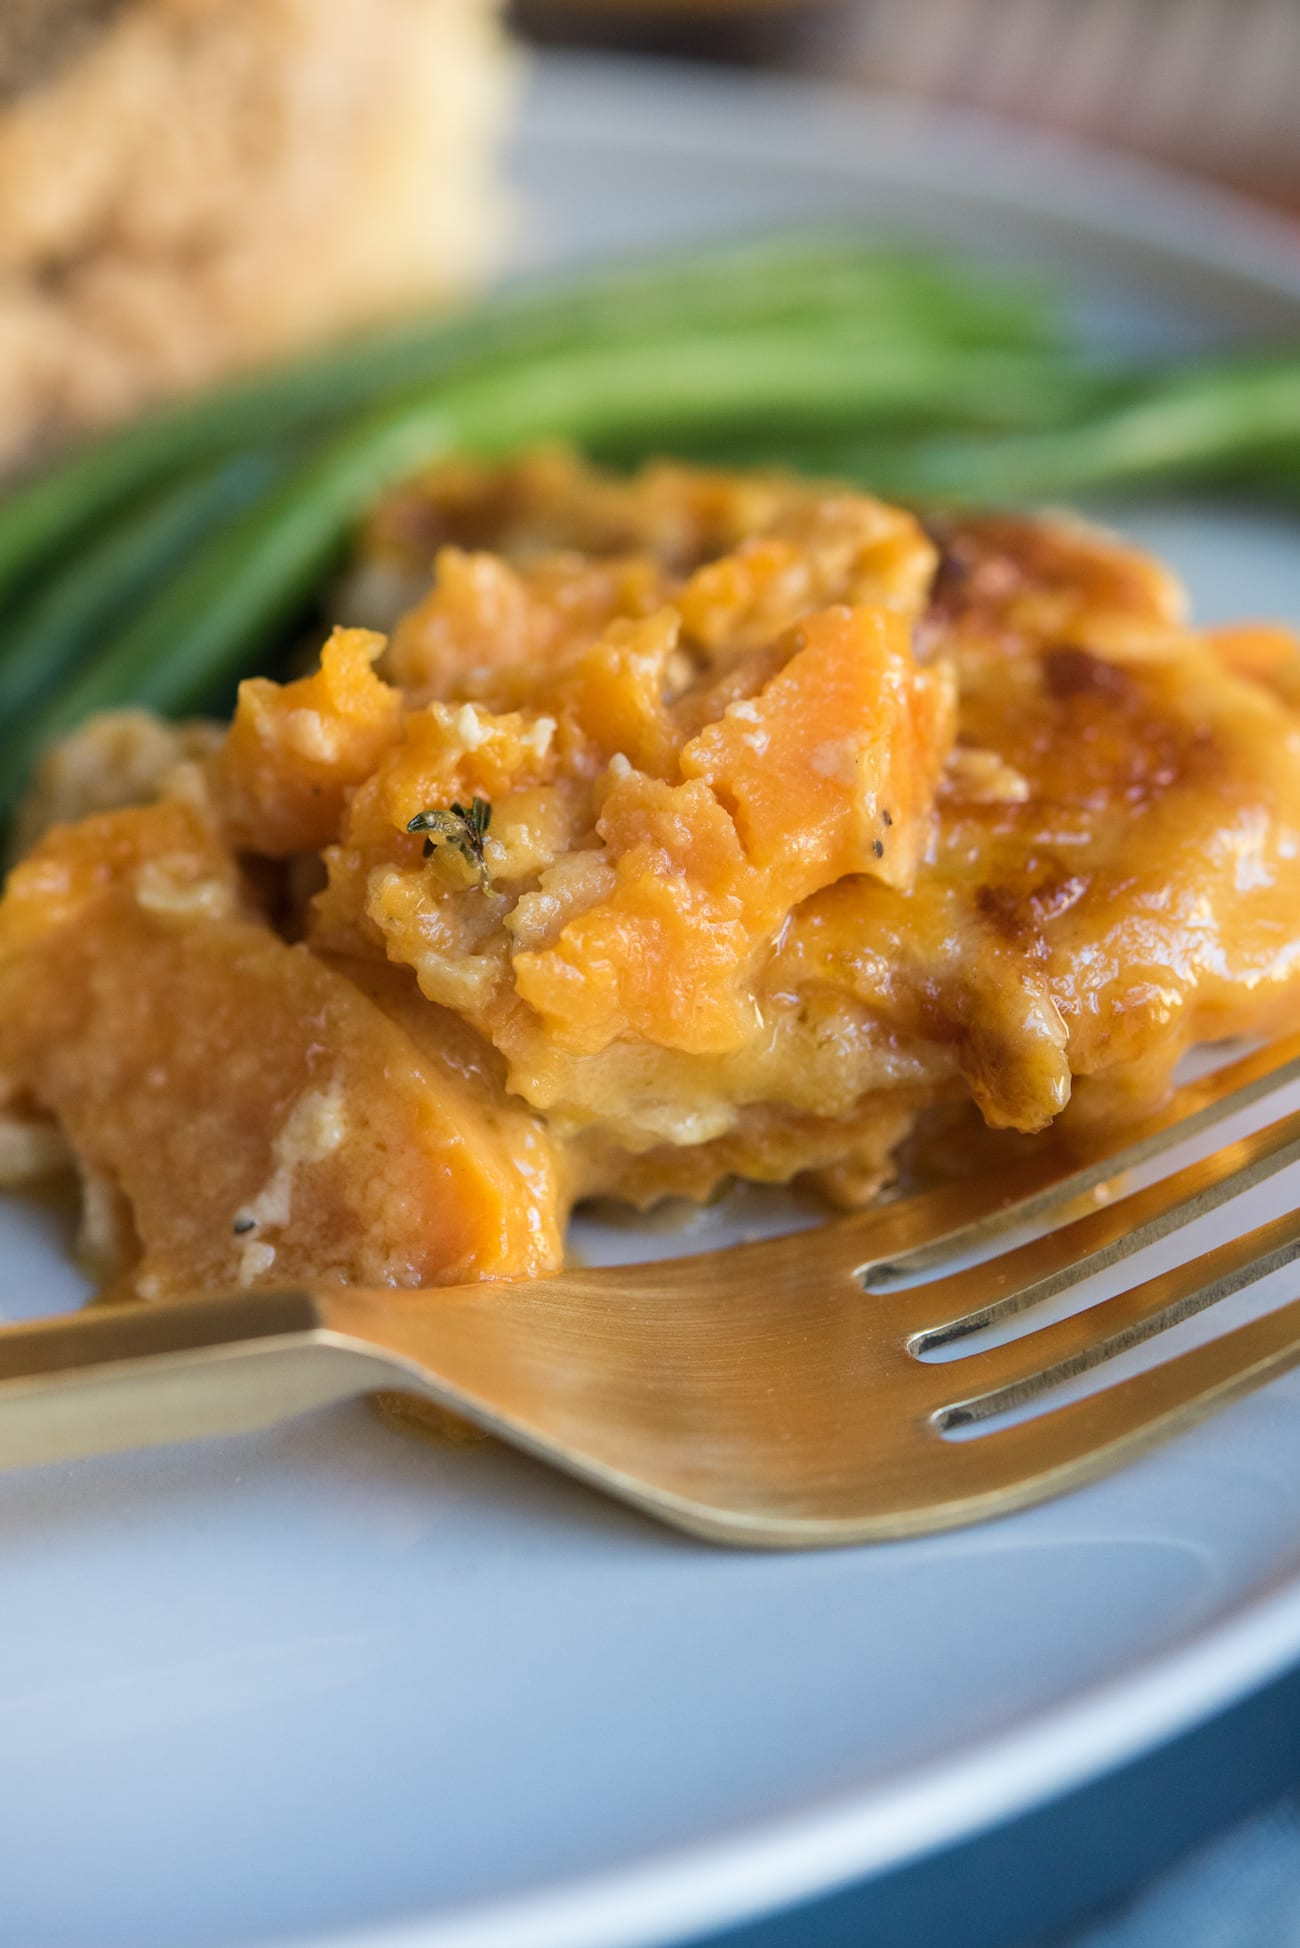 Best Thanksgiving Side Dishes - Scalloped Sweet Potatoes Recipe | Entertaining tips, Thanksgiving hosting tips, Thanksgiving menu ideas from entertaining blog @cydconverse